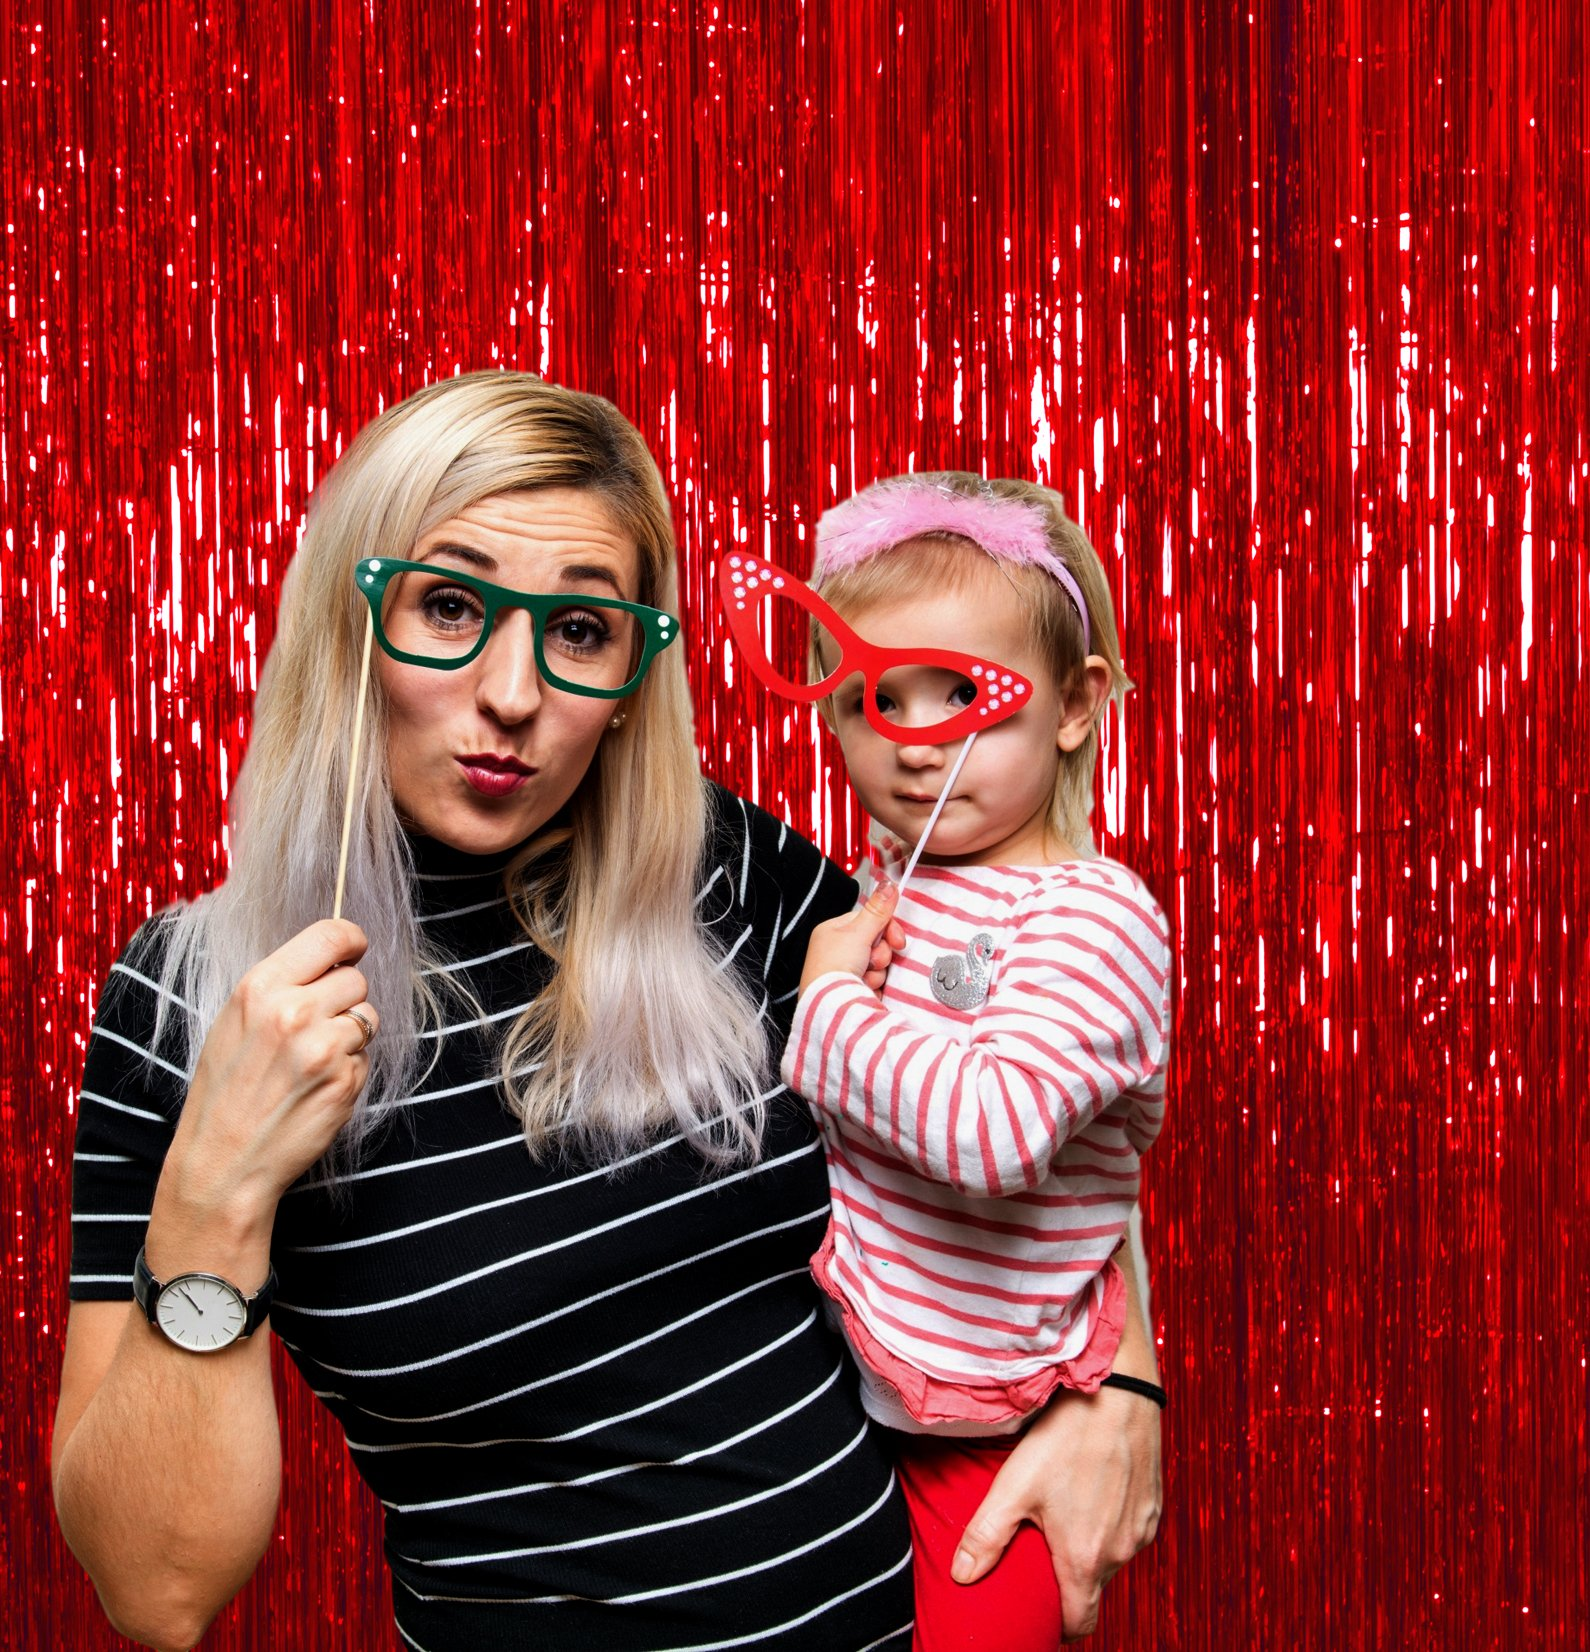 Treasures Gifted Red Foil Fringe Curtain for Photo Booth Props and Metallic Backdrop for Pictures | 3 x 8 Feet, Pack of 3 | Bachelorette Sweet 16 Christmas Party Decorations